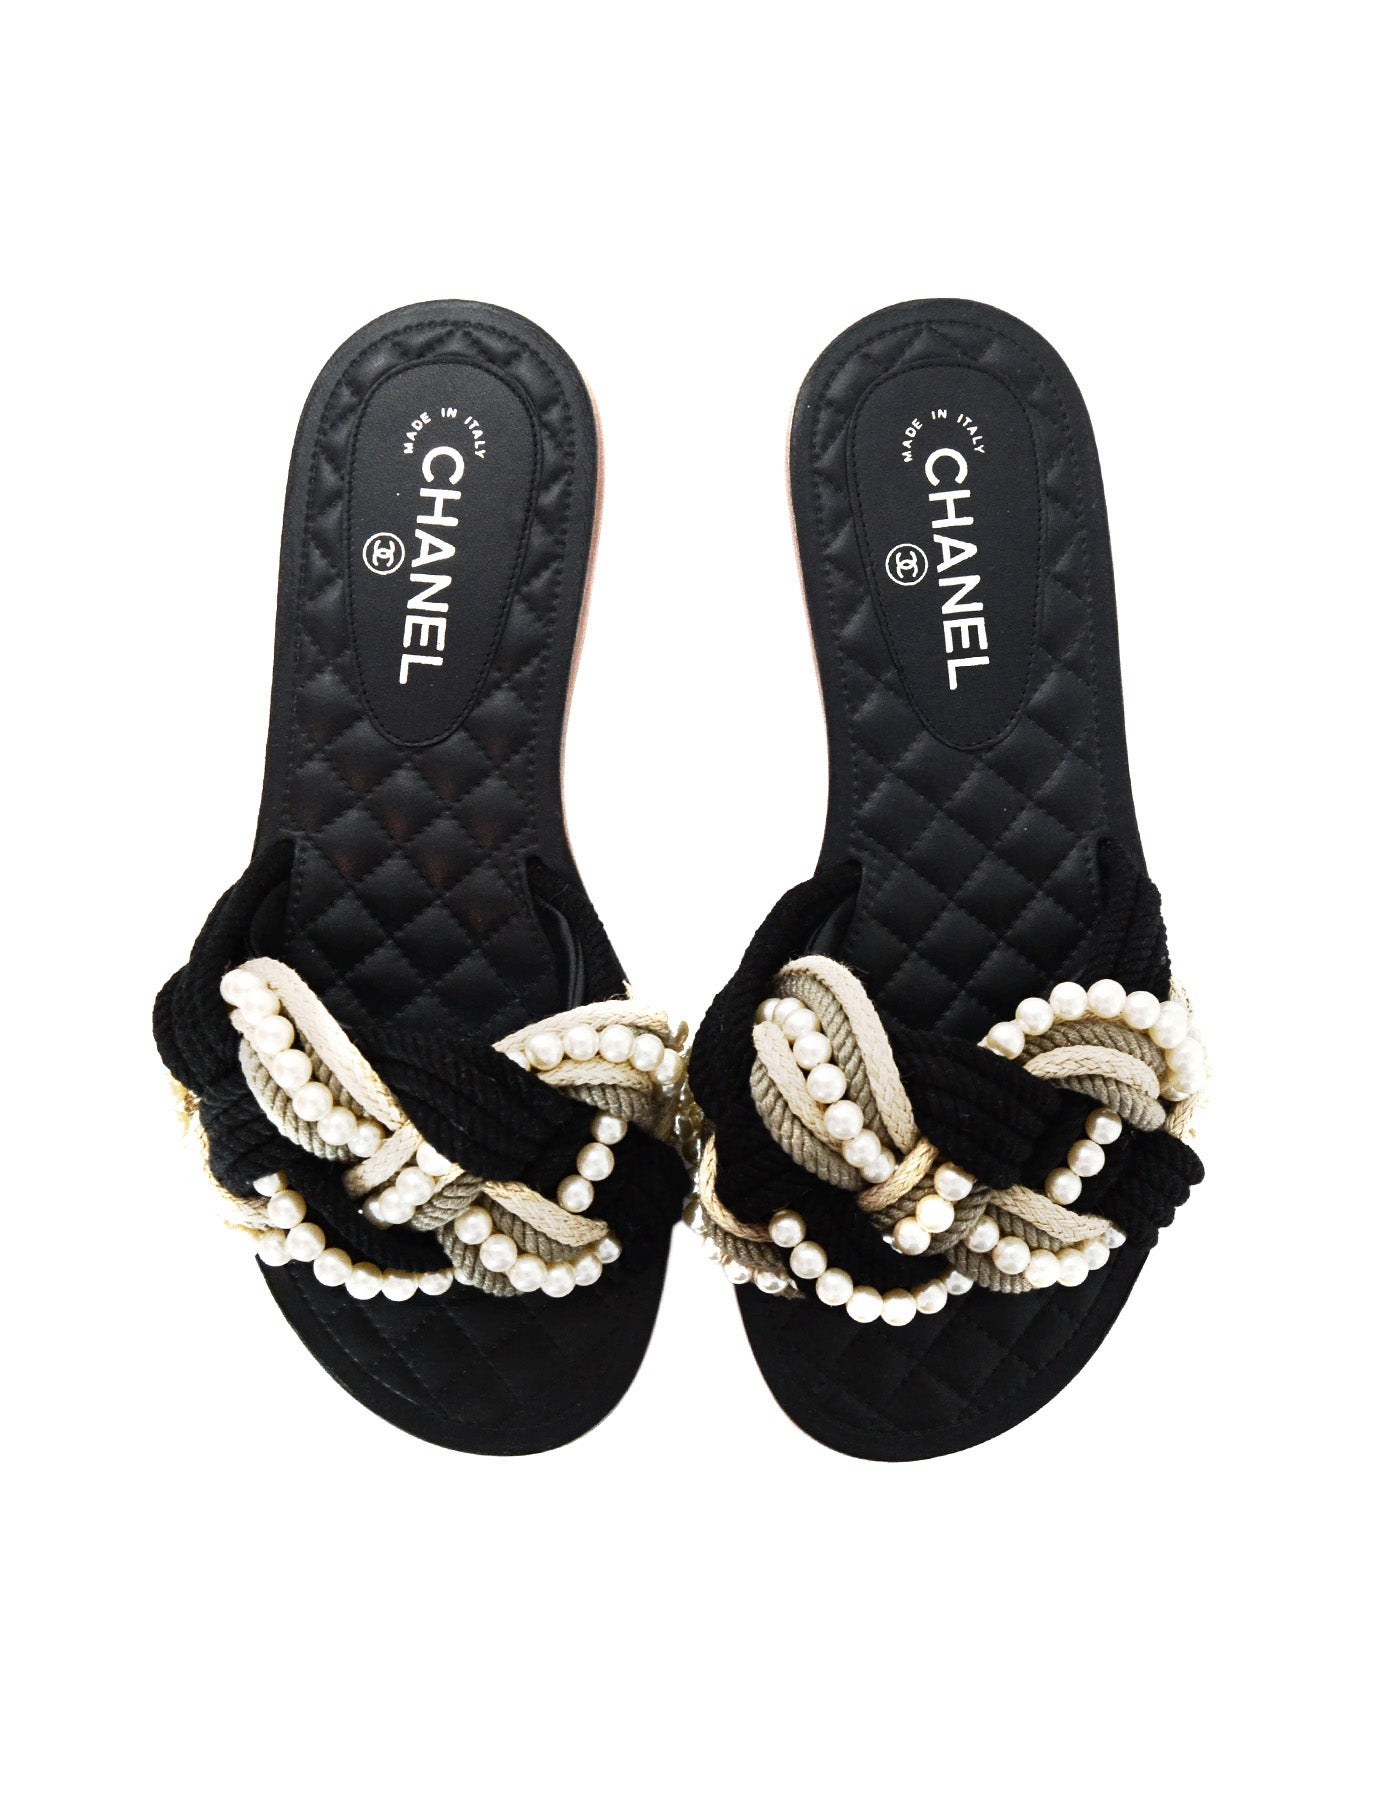 da9b26033fc2 Chanel  17 Paris Cuba Black Beige Braided Rope and Pearl Slide Sandals Sz  40C Wide For Sale at 1stdibs